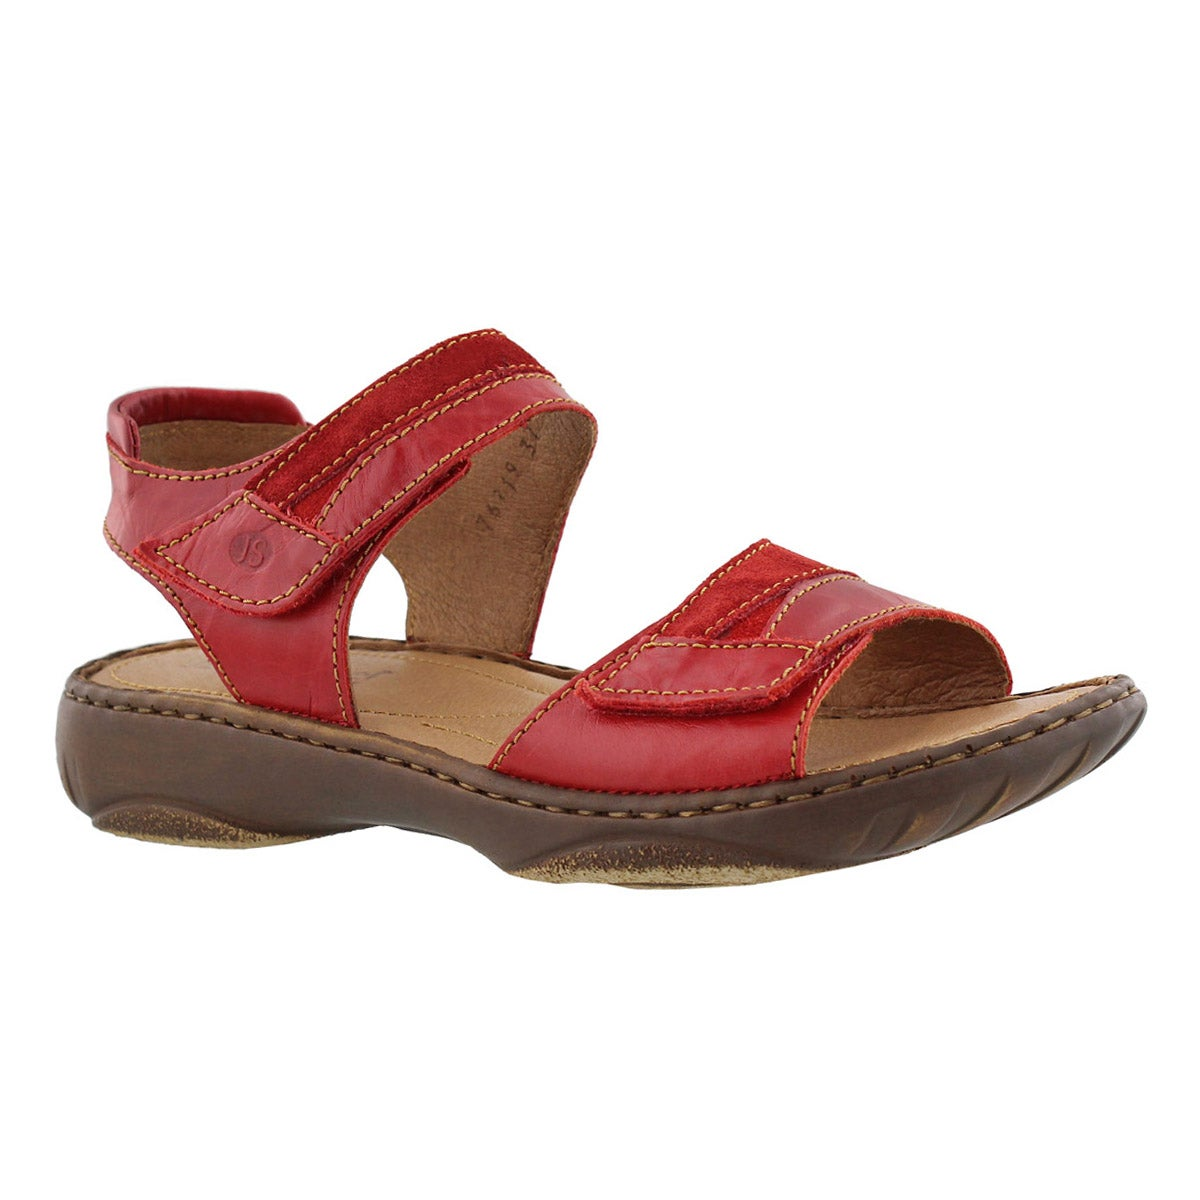 Lds Debra 19 red casual 2 strap sndl